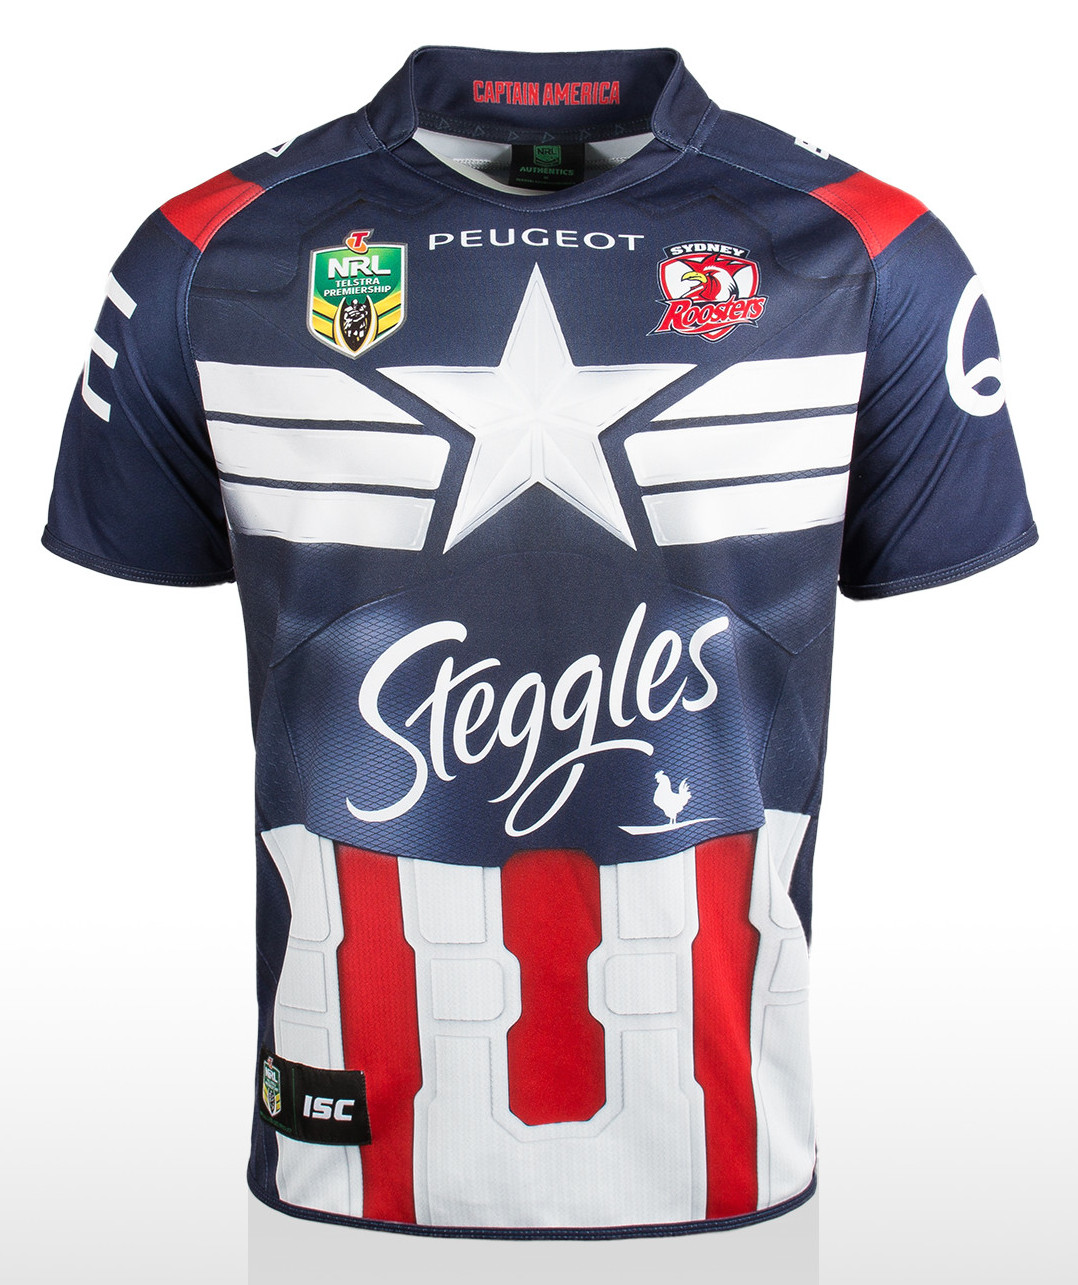 16ed54555b6 Sydney Roosters Captain America Shirt. RoostersMarvel15Front